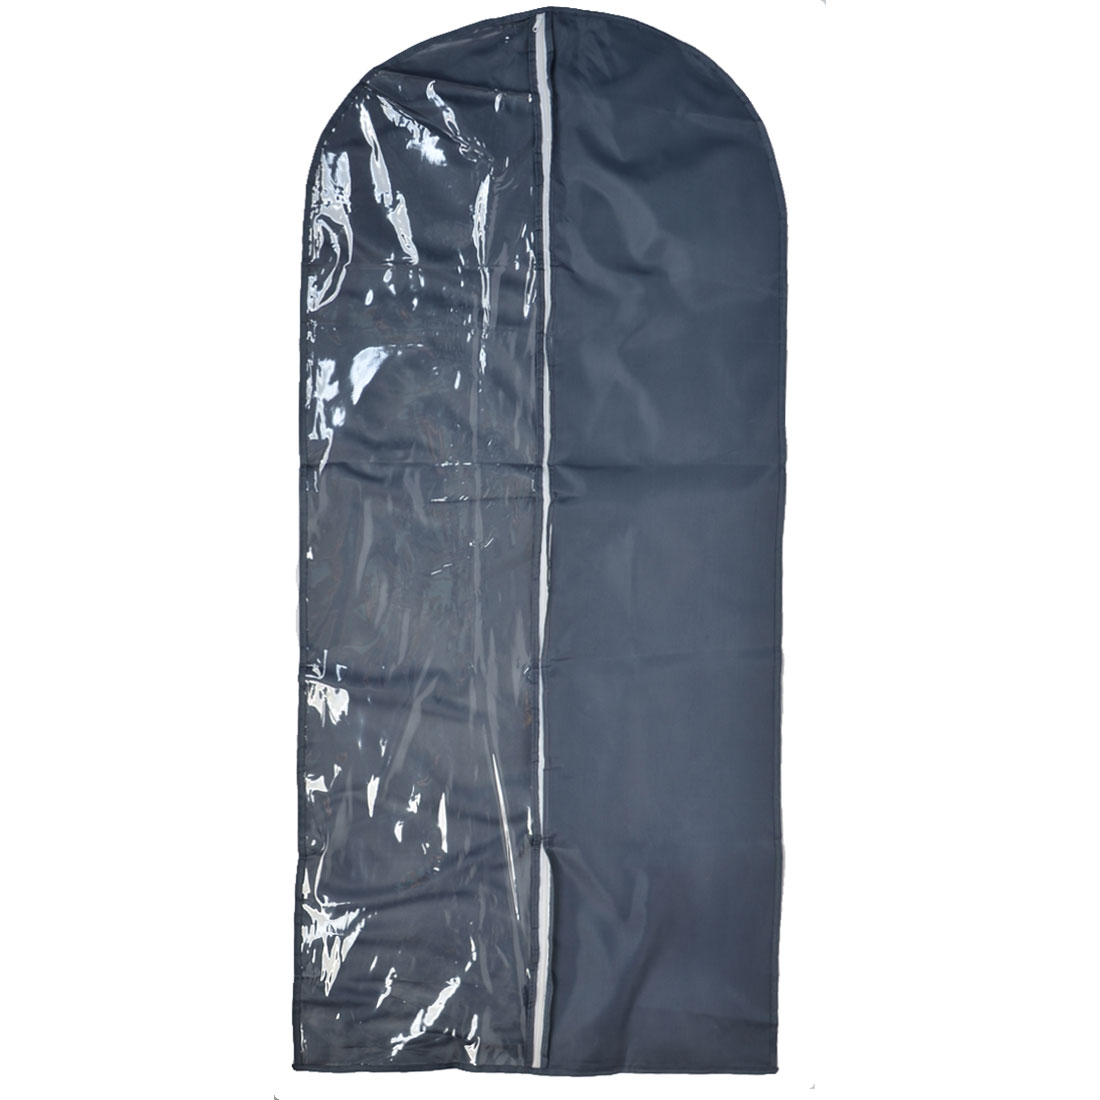 Travel Home Clothes Suit Dress Dustproof Cover Storage Protector Bag Dark Gray